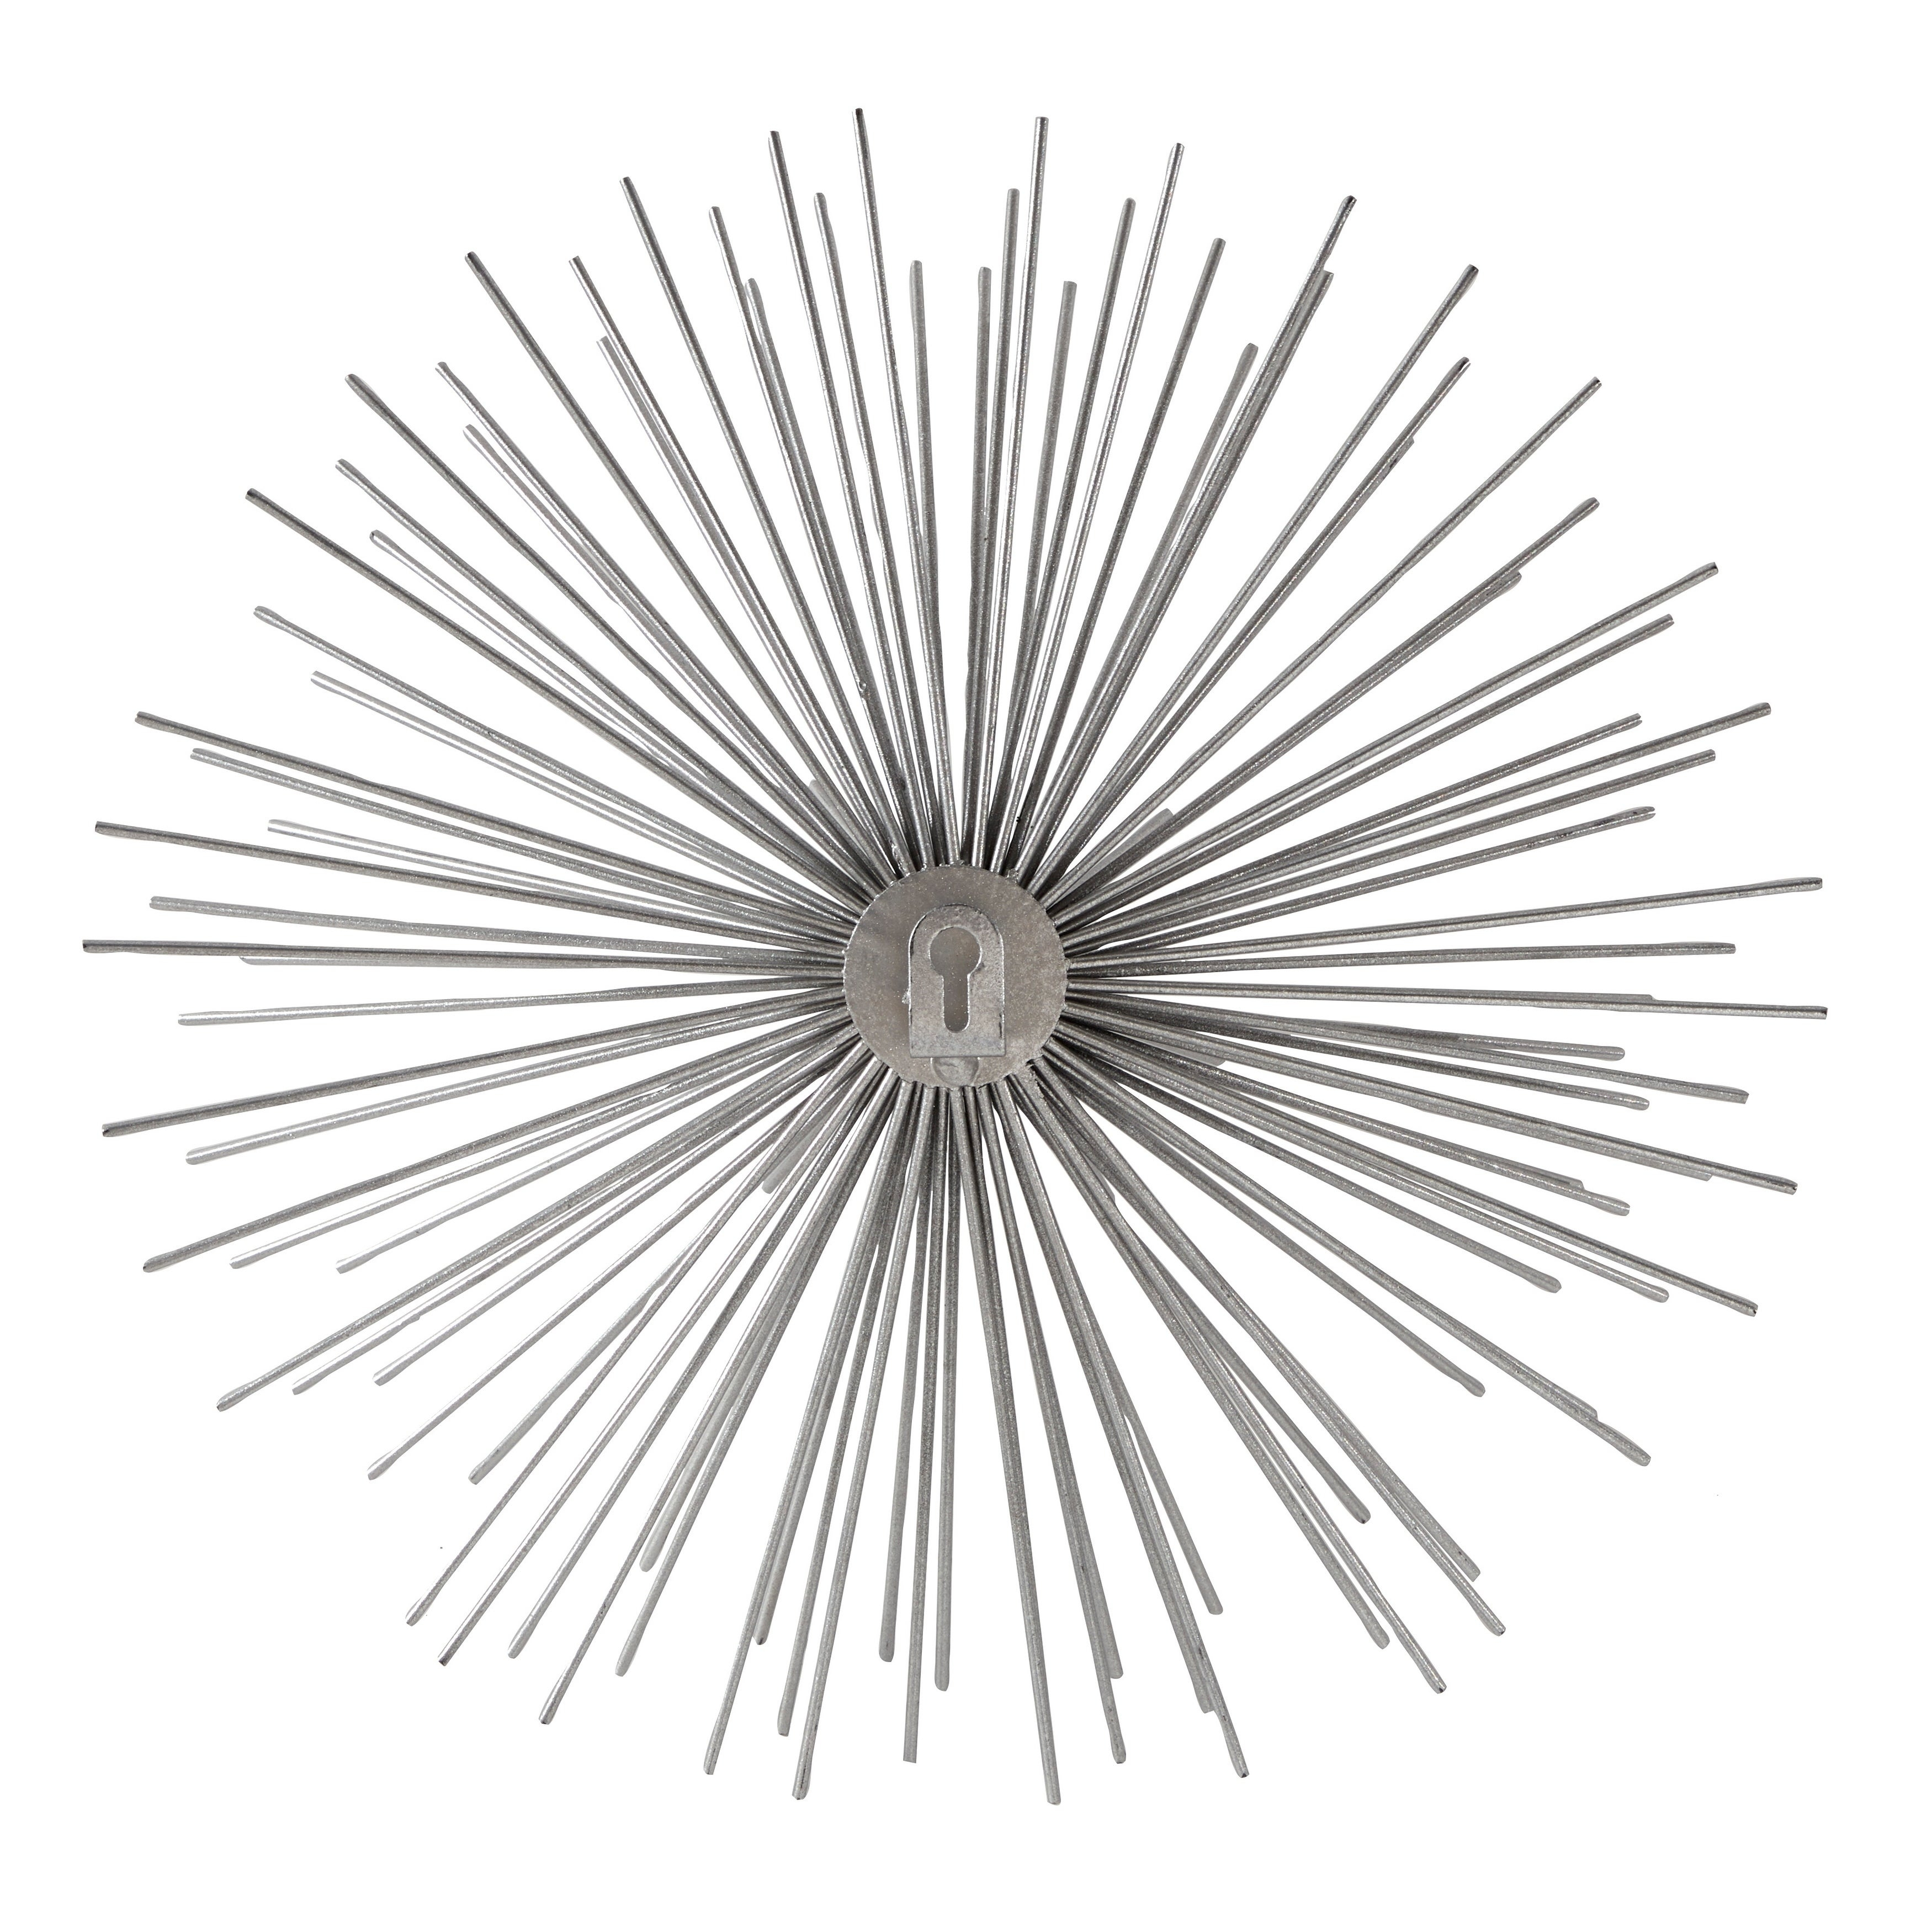 Favorite 2 Piece Starburst Wall Decor Sets Within Shop Contemporary 3D Silver Metal Starburst Wall Decor Sculptures (View 7 of 20)